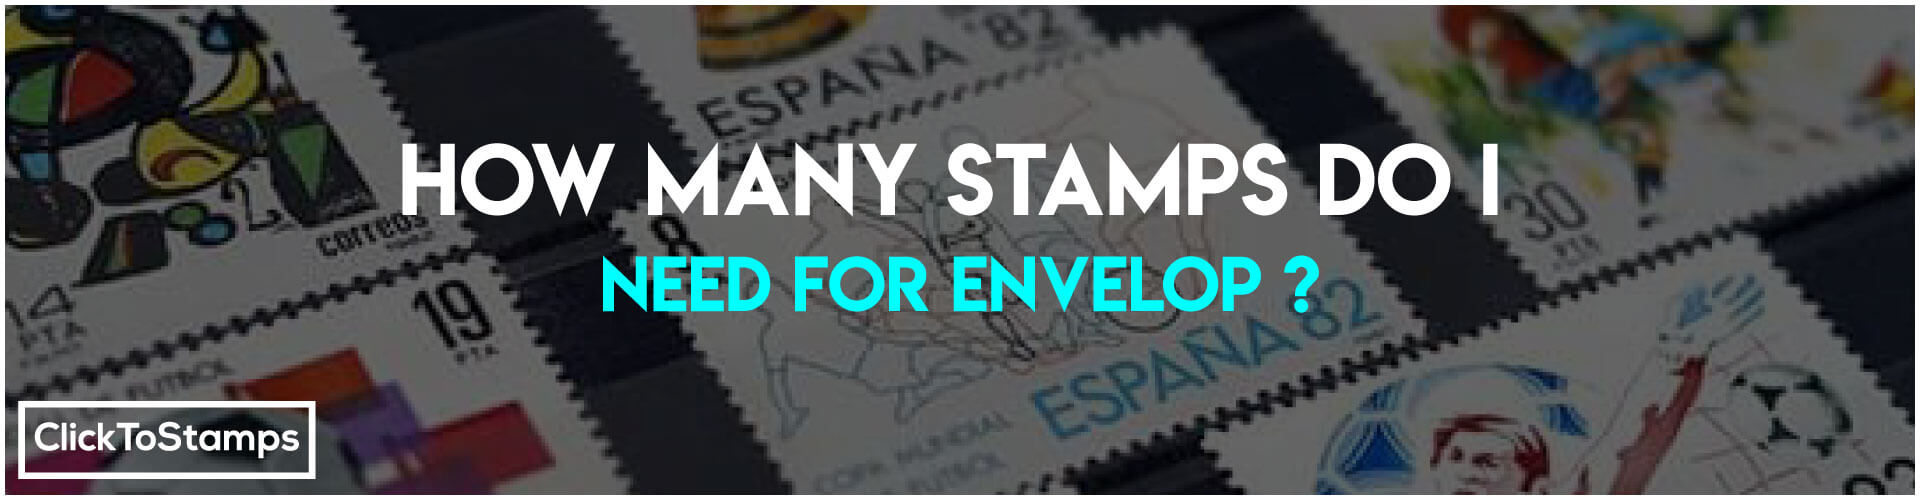 How Many Stamps Do I Need For Envelope ?